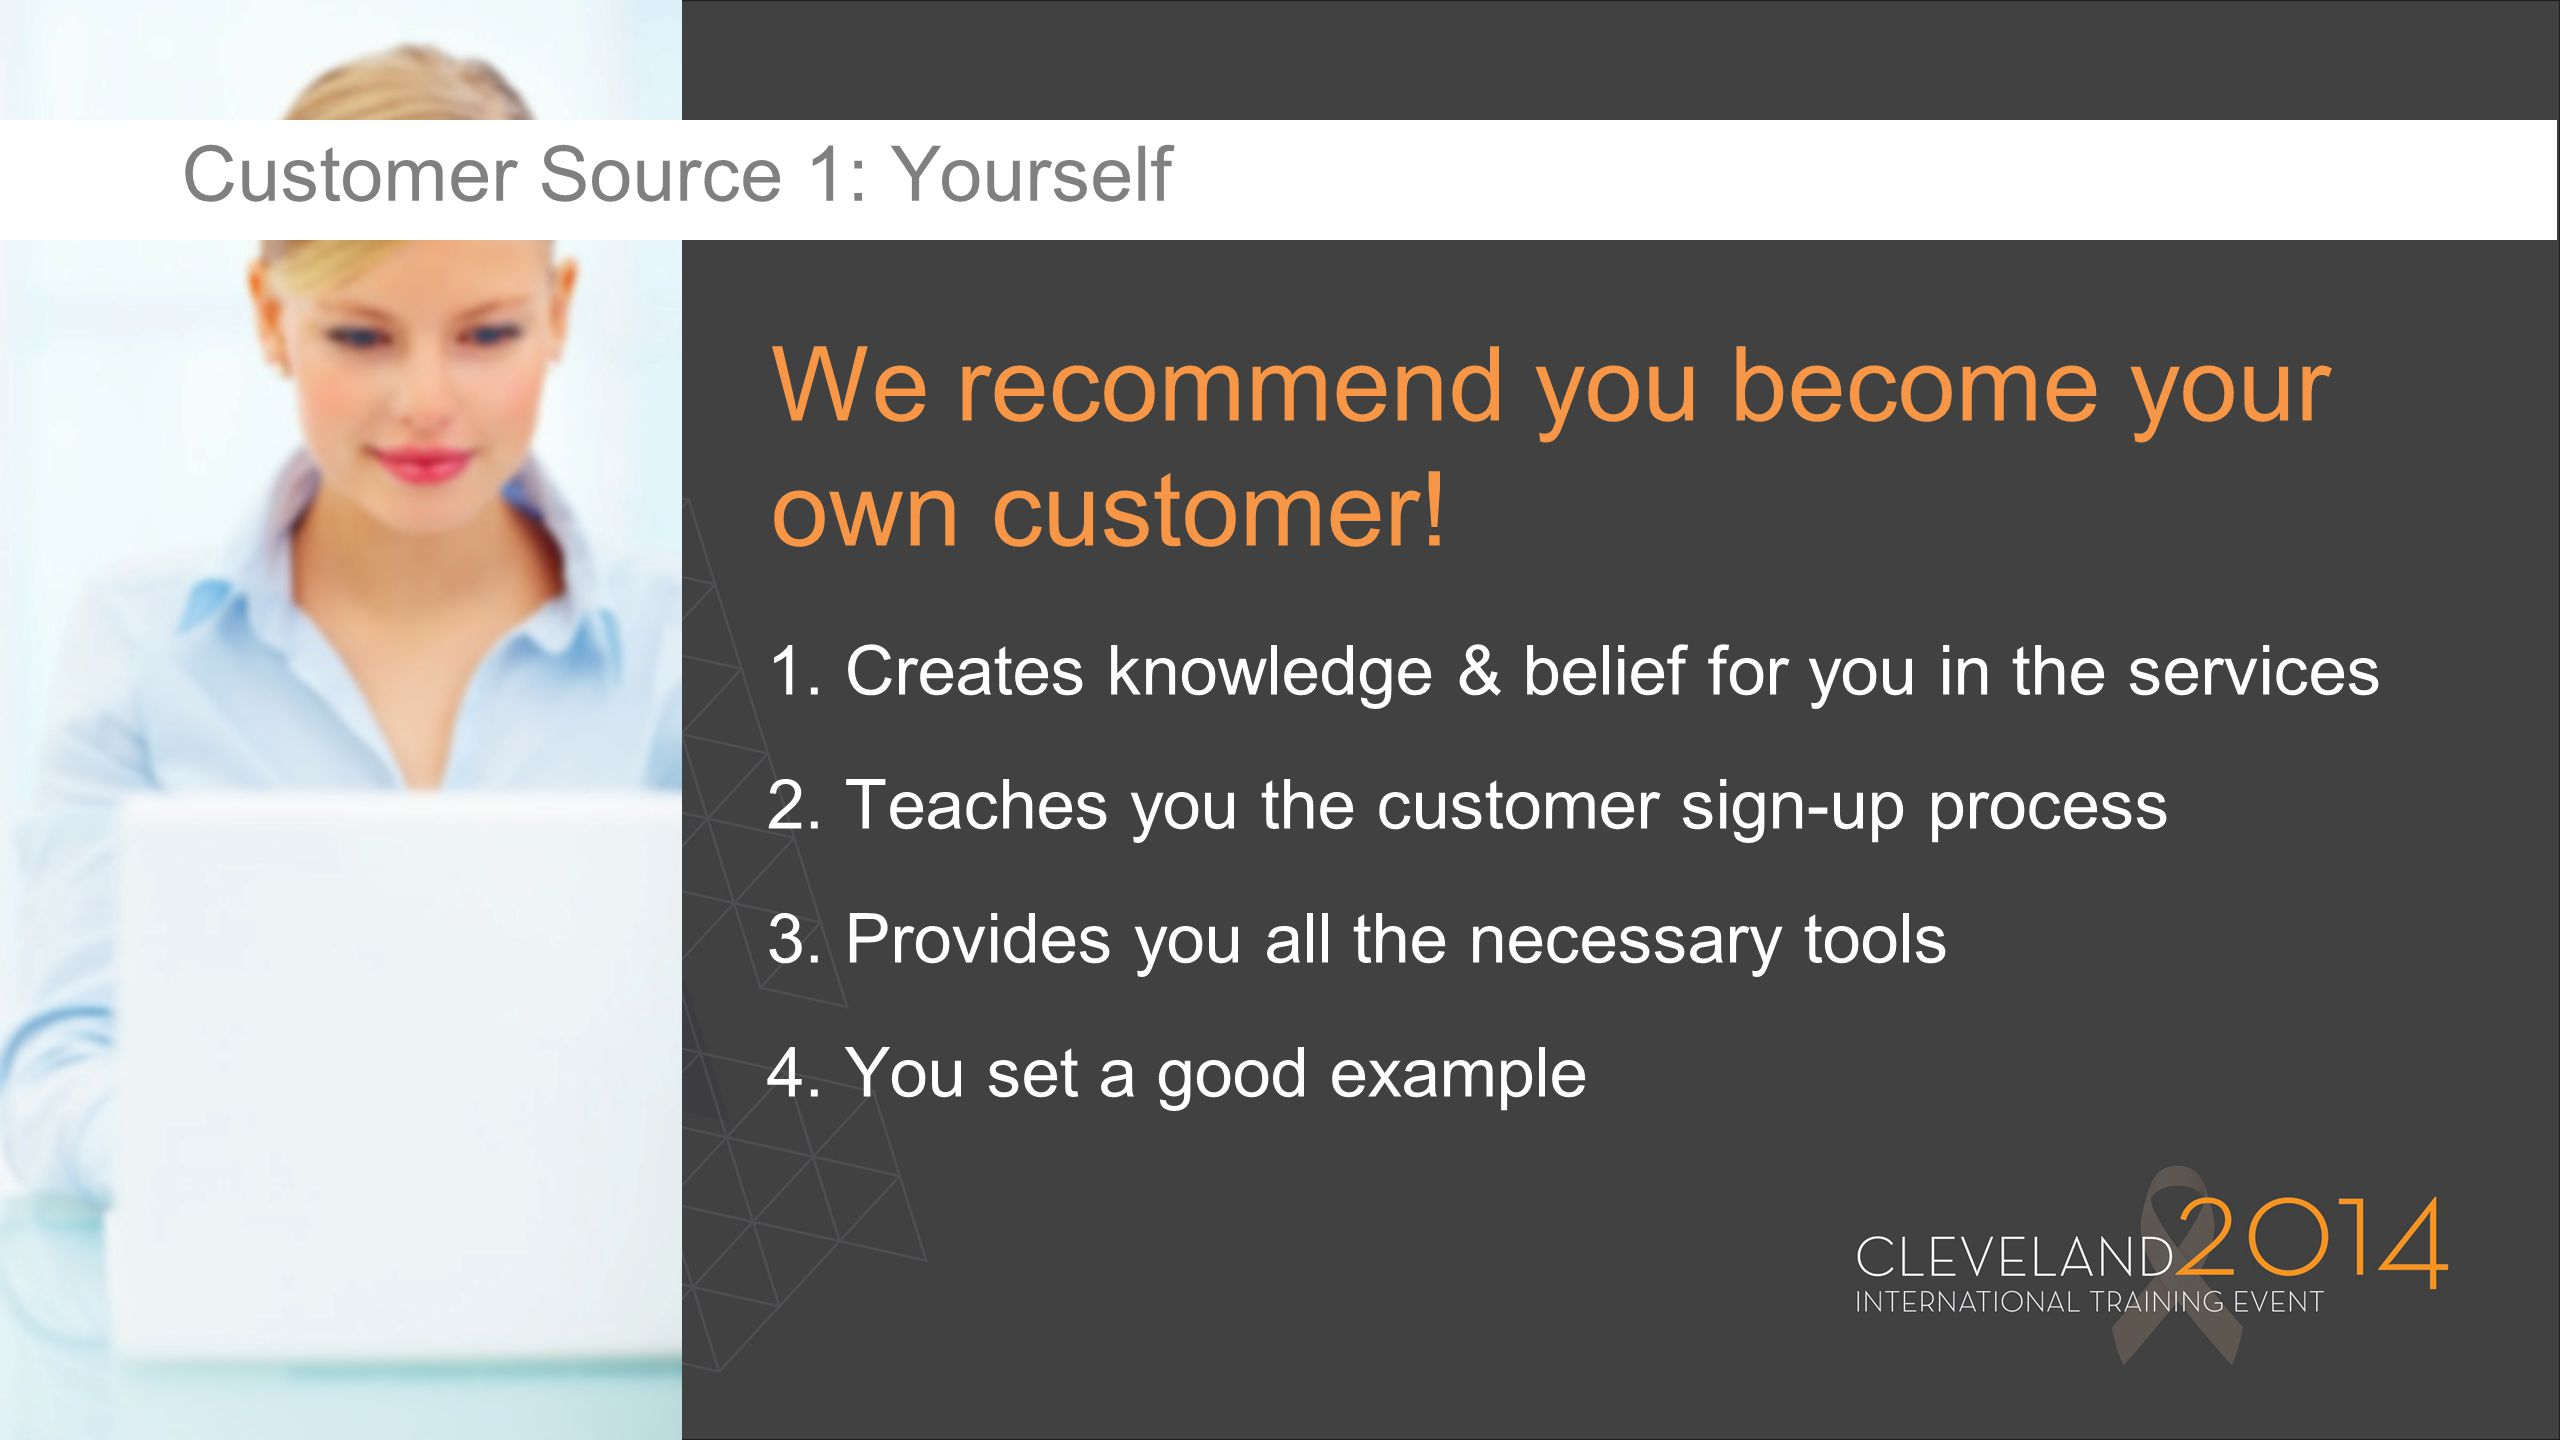 1.Creates knowledge & belief for you in the services 2.Teaches you the customer sign-up process 3.Provides you all the necessary tools 4.You set a goo